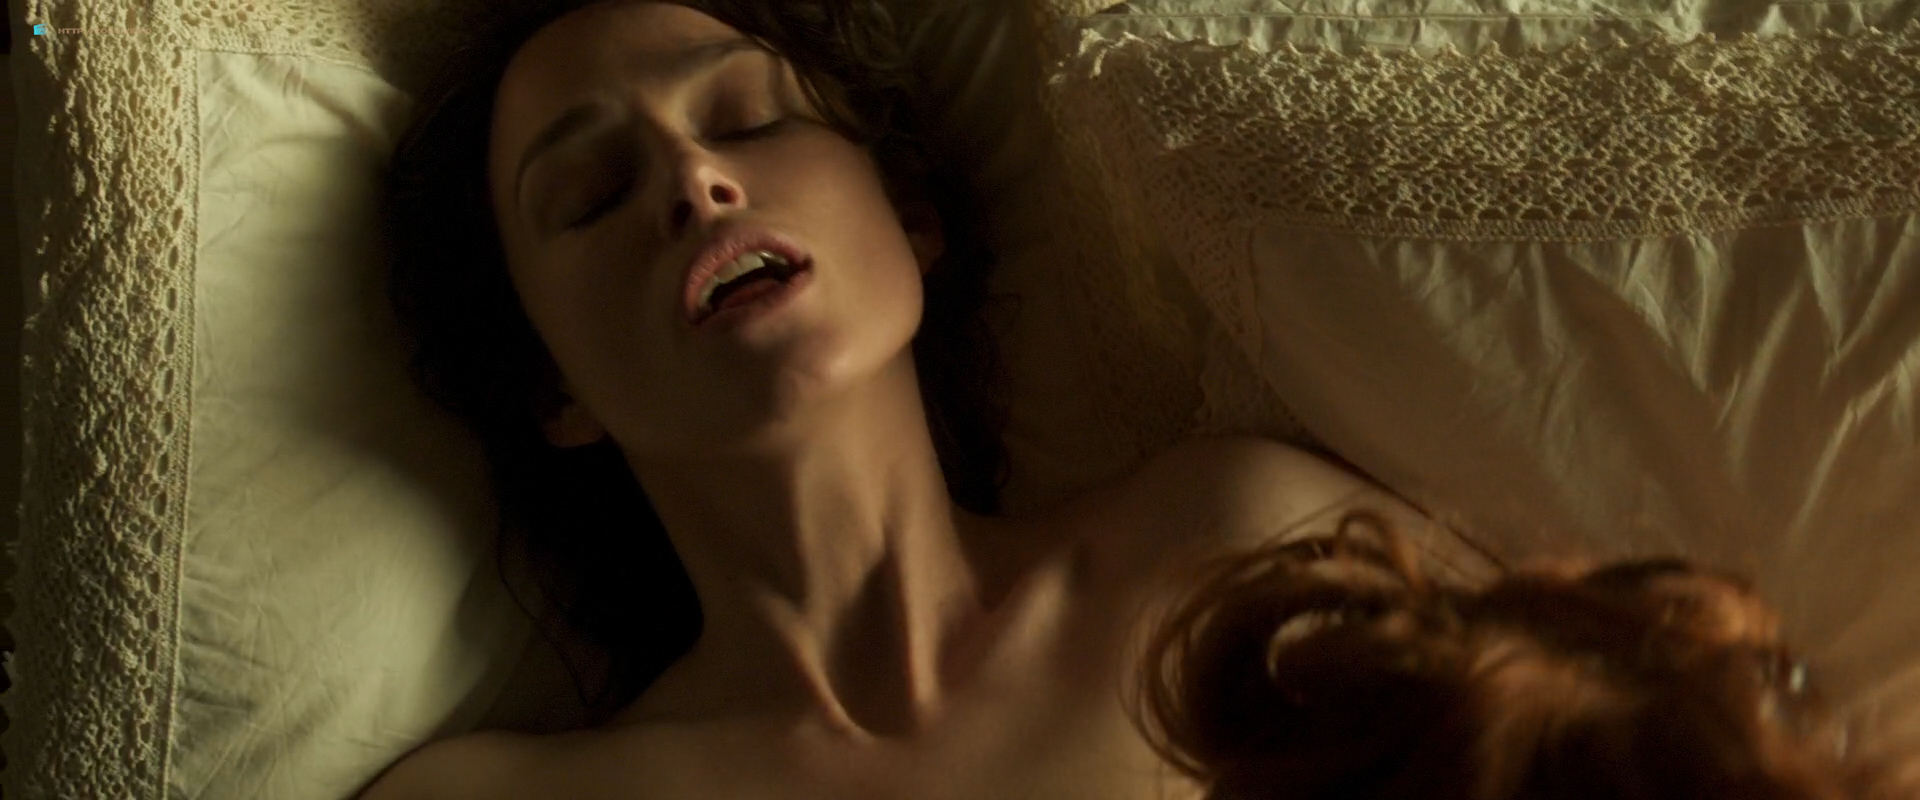 Keira knightley naked lesbian phrase and